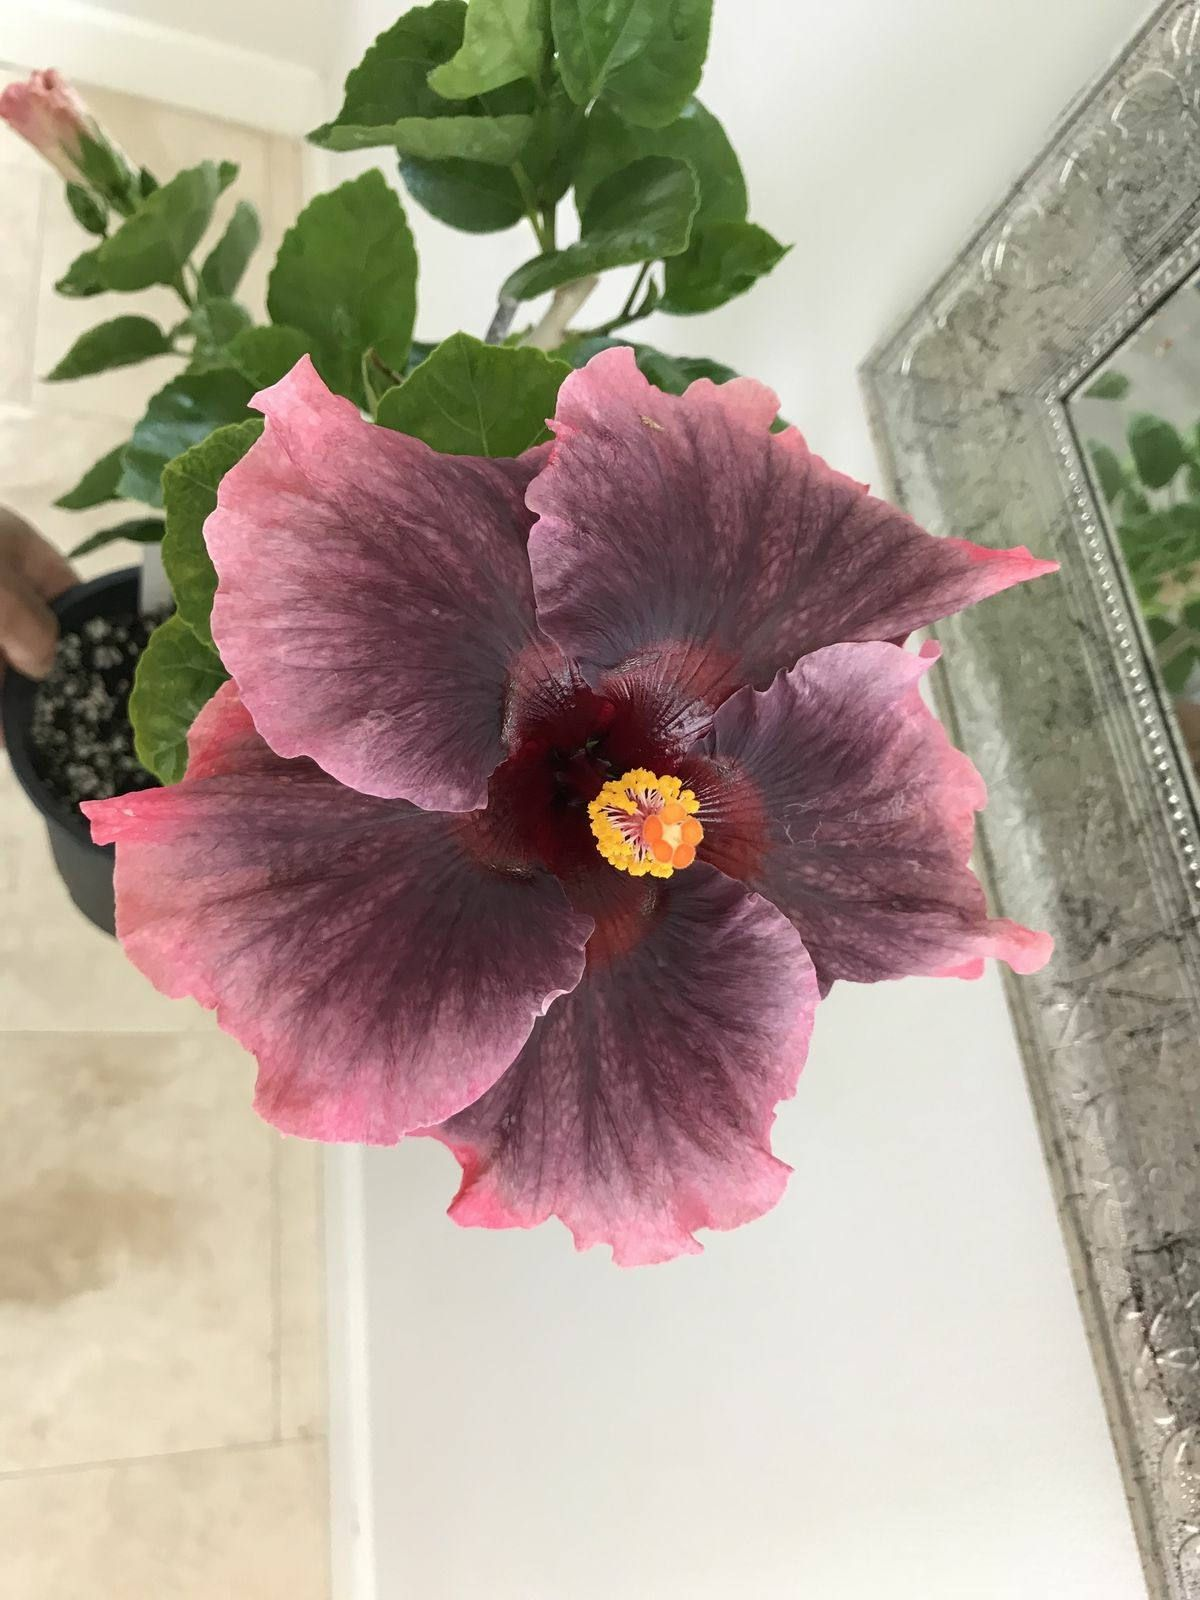 Rare Pink Gray Silver White Hibiscus Seeds Giant Dinner Plate Fresh